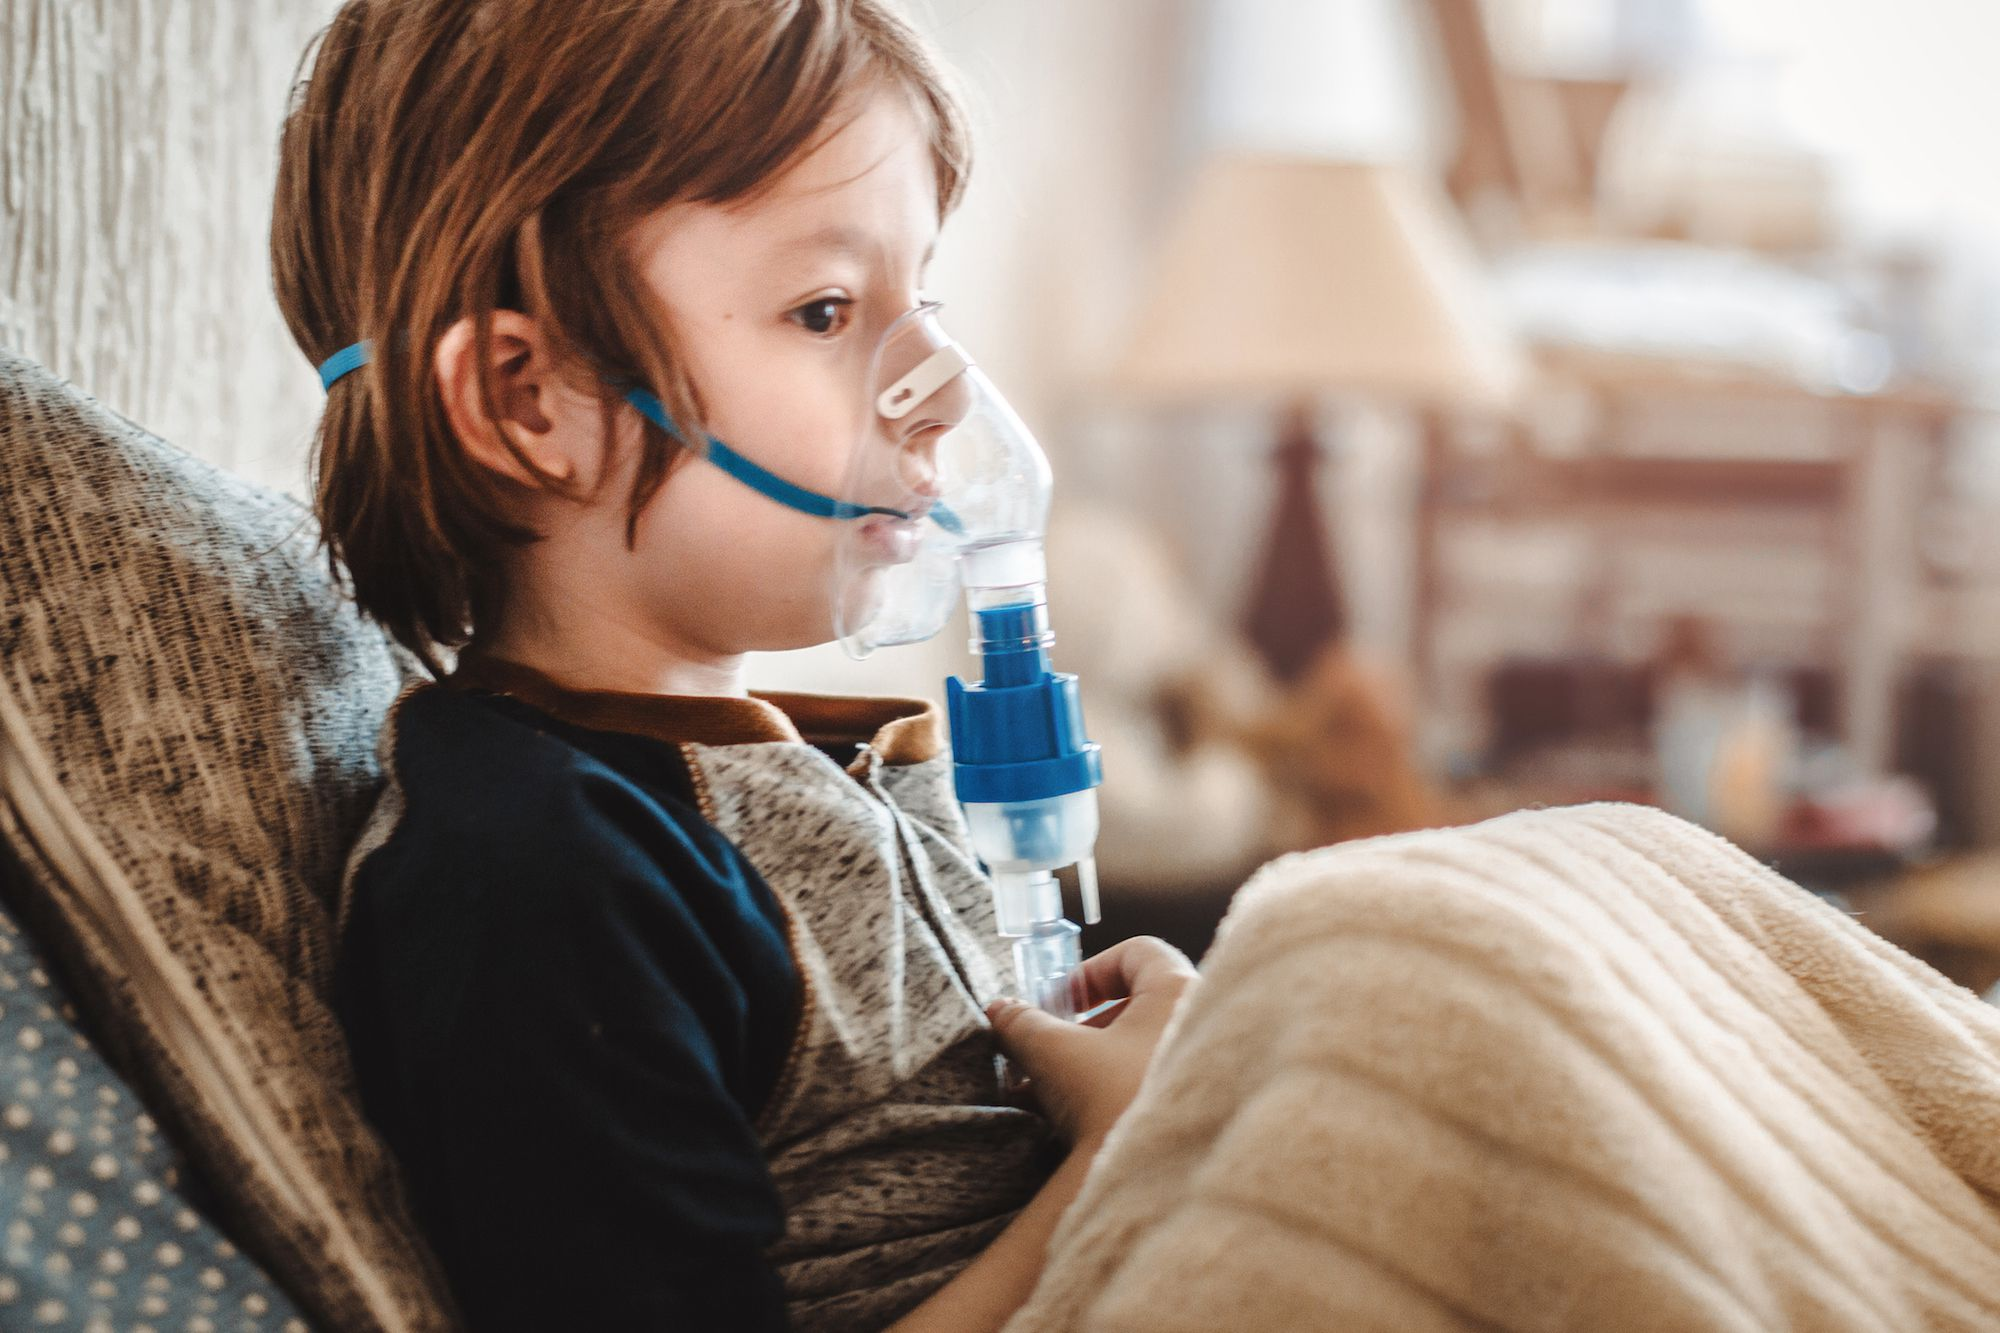 The Best Portable Nebulizers for Asthma Treatment